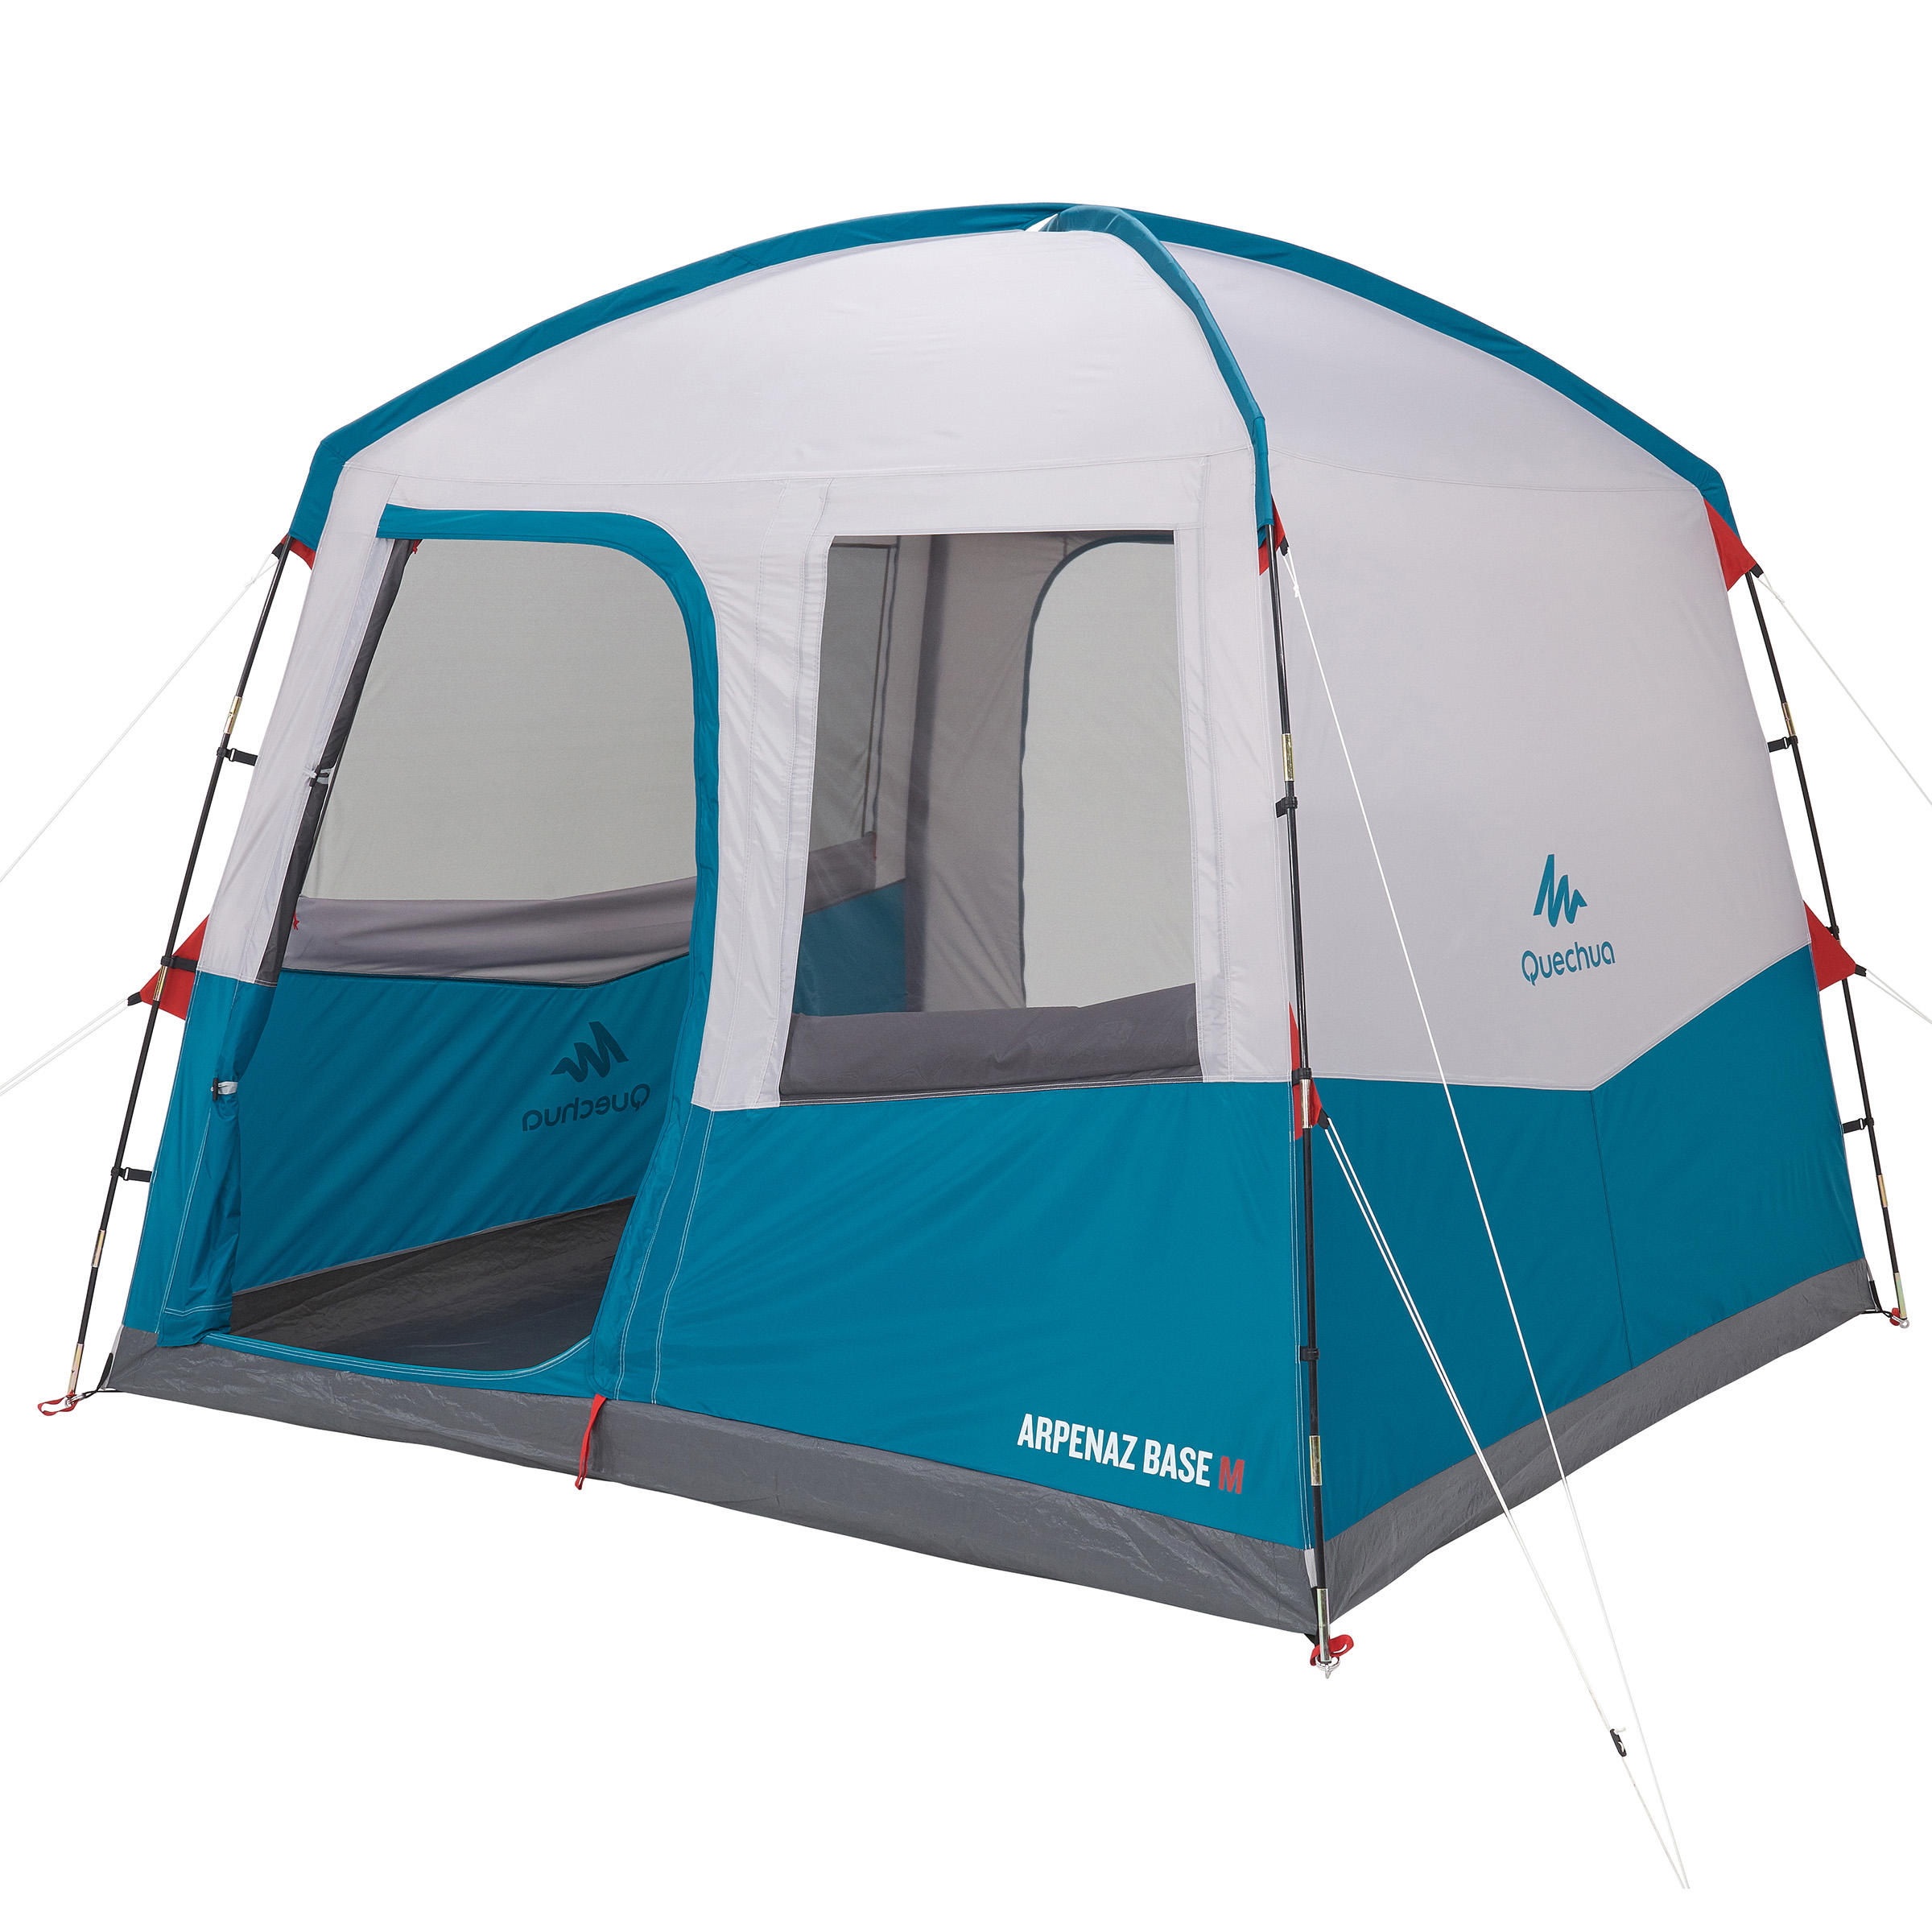 BASE ARPENAZ M Pole-Supported C&ing Living Area _PIPE_ 6-Person  sc 1 st  Decathlon & Buy Camping 8 Person Tent Online | Quechua 8 Person Tent